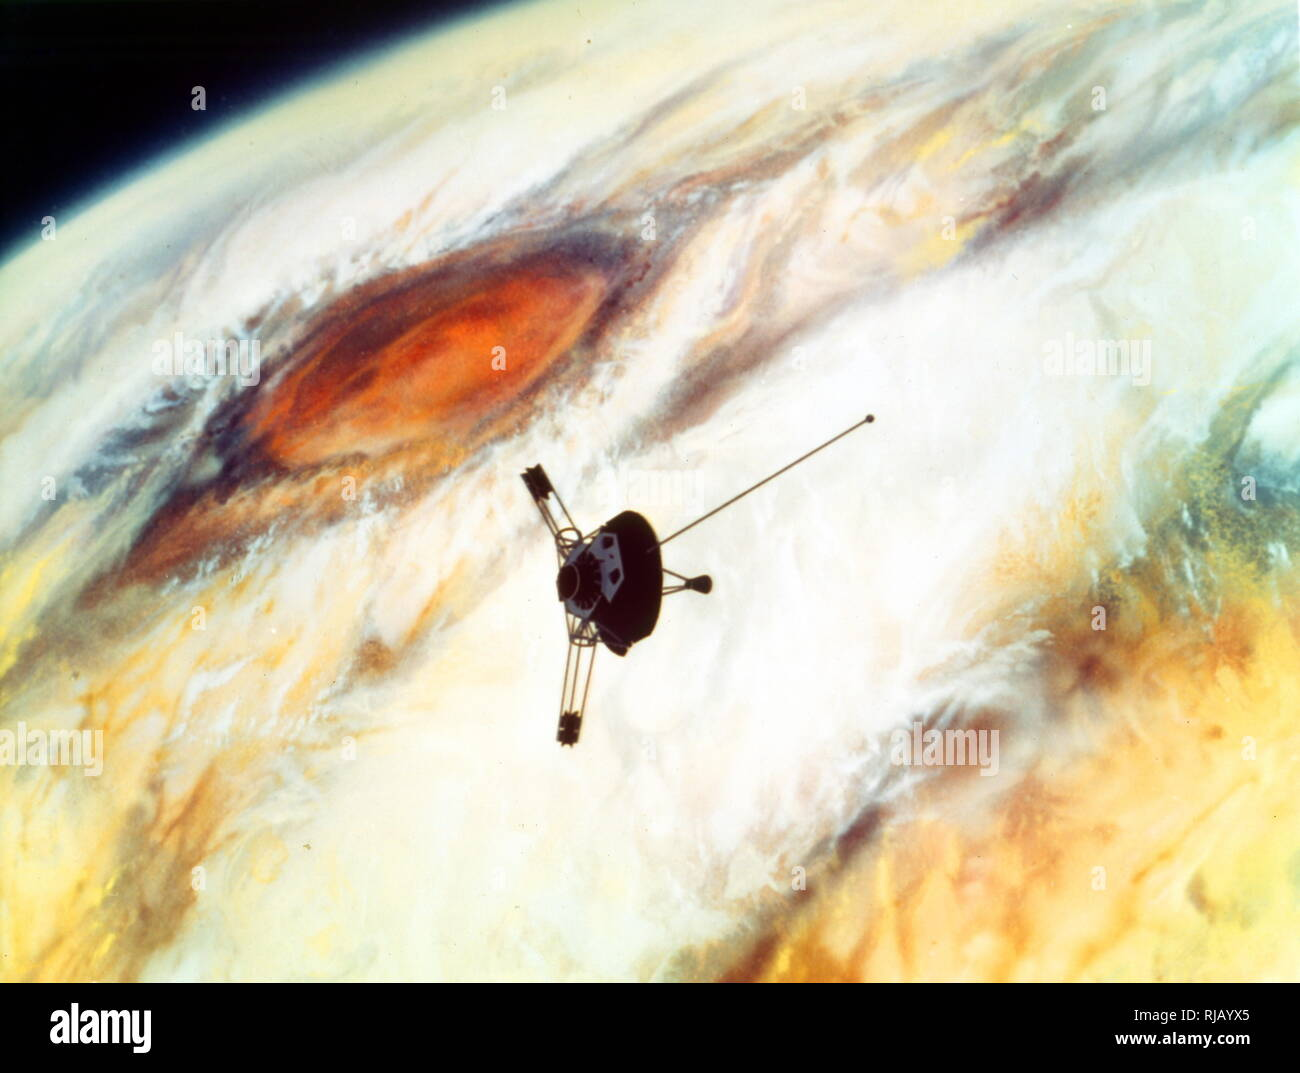 Artist's impression of Pioneer 10's flyby of Jupiter. Pioneer 10 (originally designated Pioneer F) is an American space probe, launched in 1972 and weighing 258 kilograms (569 pounds), that completed the first mission to the planet Jupiter. Thereafter, Pioneer 10 became the first of five artificial objects to achieve the escape velocity that will allow them to leave the Solar System. - Stock Image